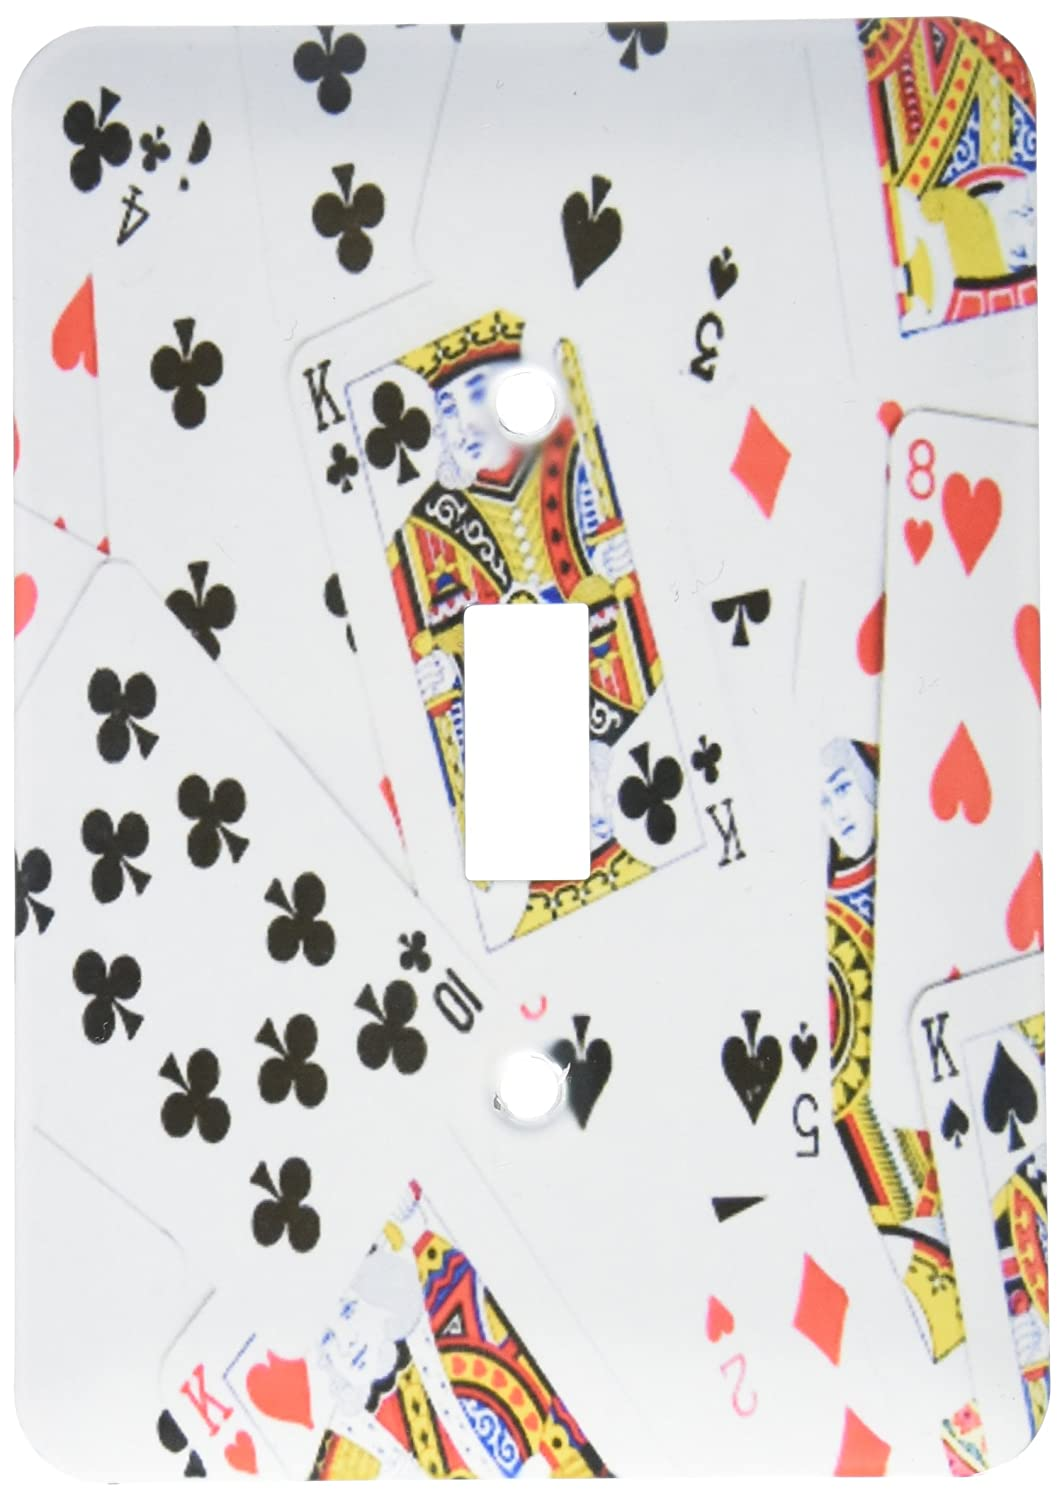 3dRose lsp/_112896/_1 Scattered Playing Photo-for Card Players Egg Poker Bridge Games Casino Las Vegas Night Single Toggle Switch Multicolored